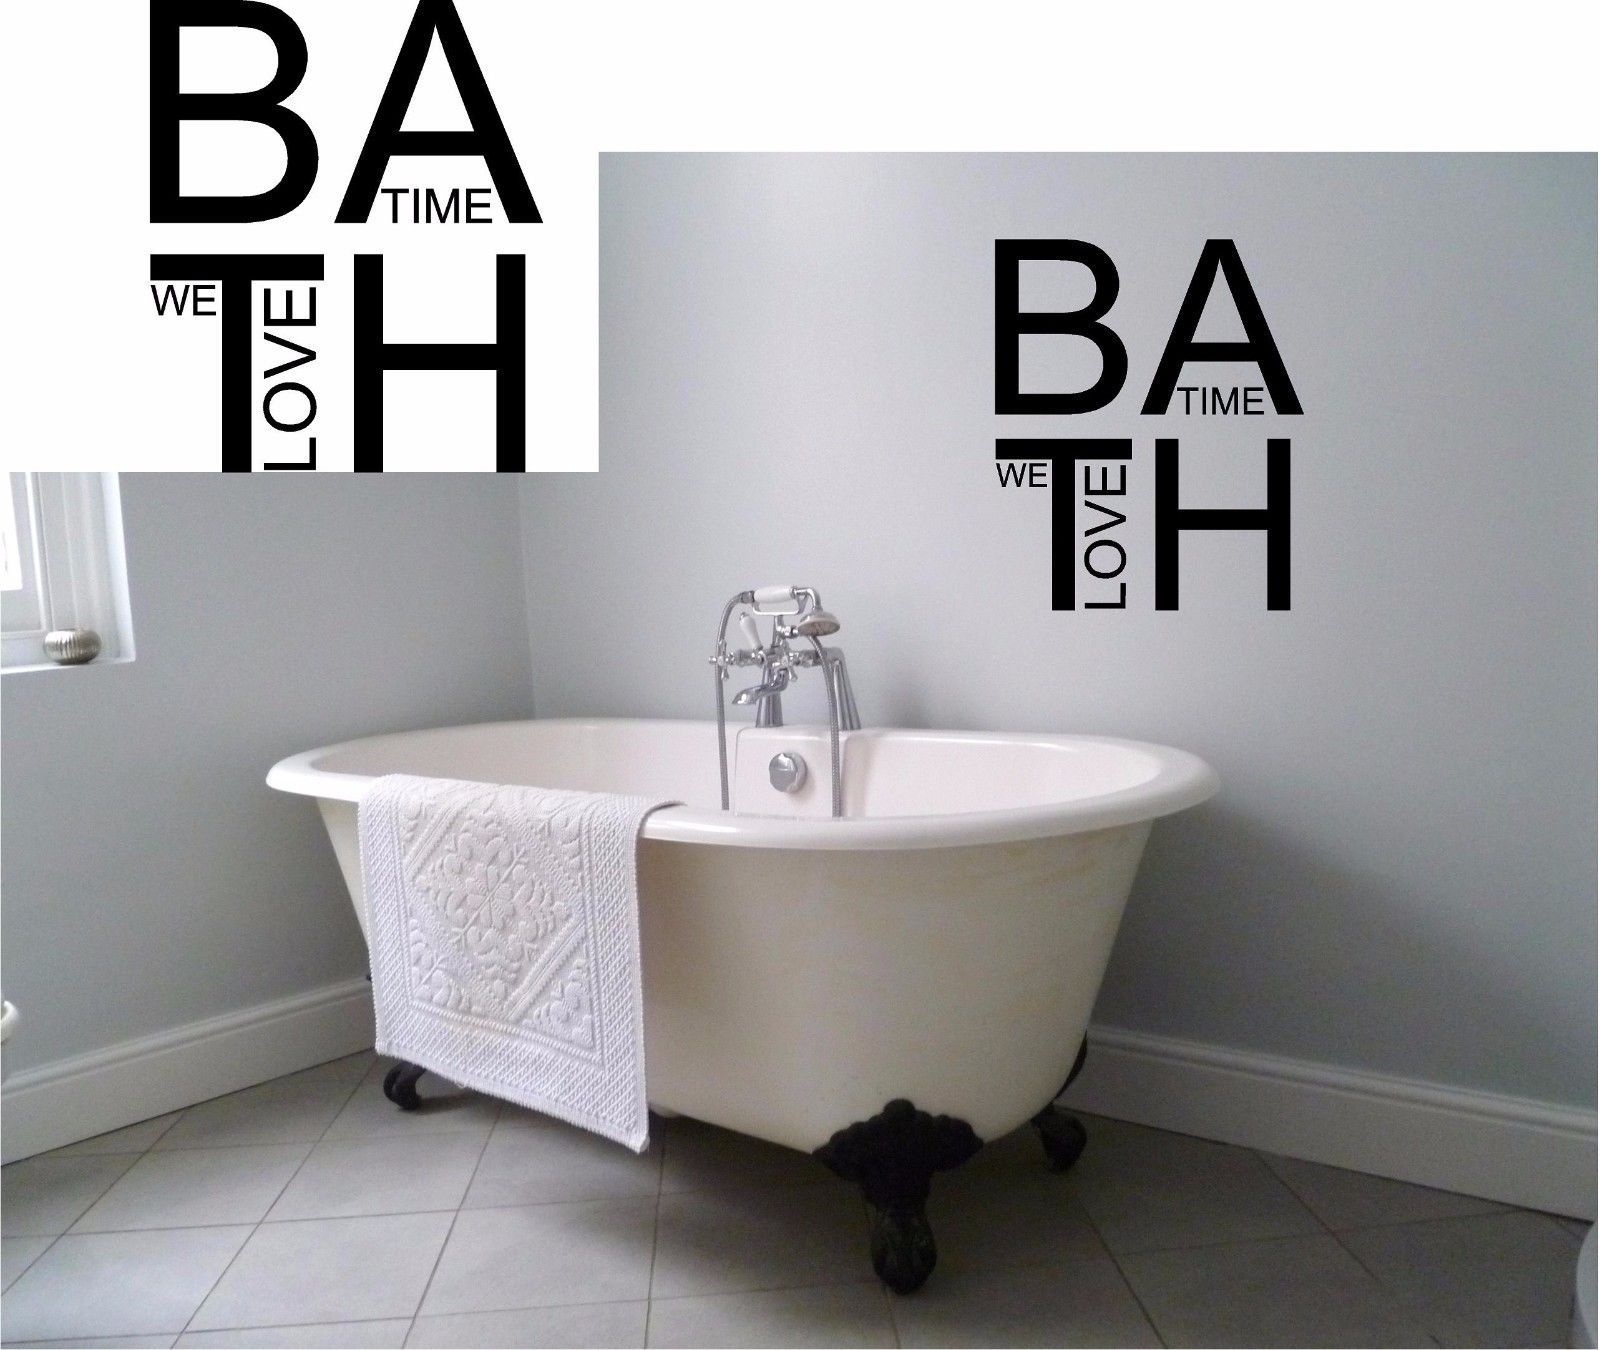 We Love Bathtime Bathroom Wall Decal Cute Funny Room Bath Vinyl Sticker ...